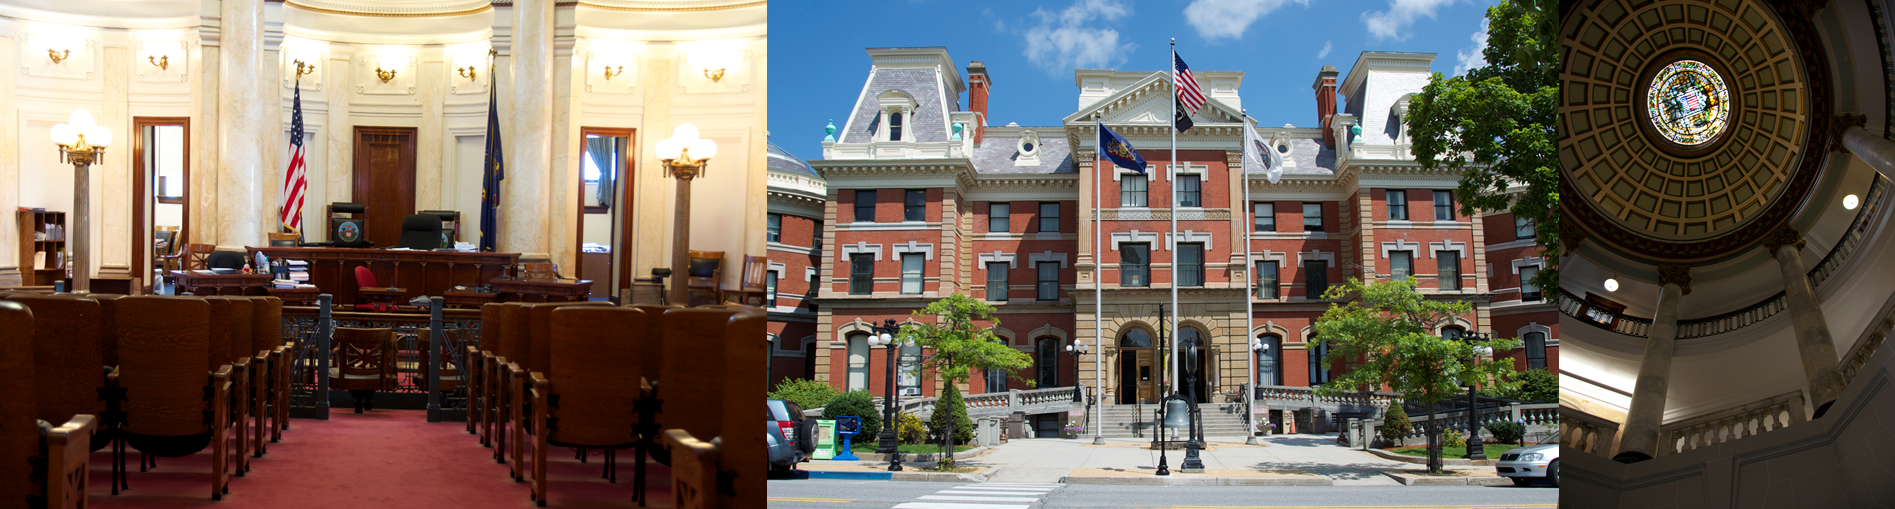 Visit Johnstown Pa | Cambria County Courthouse